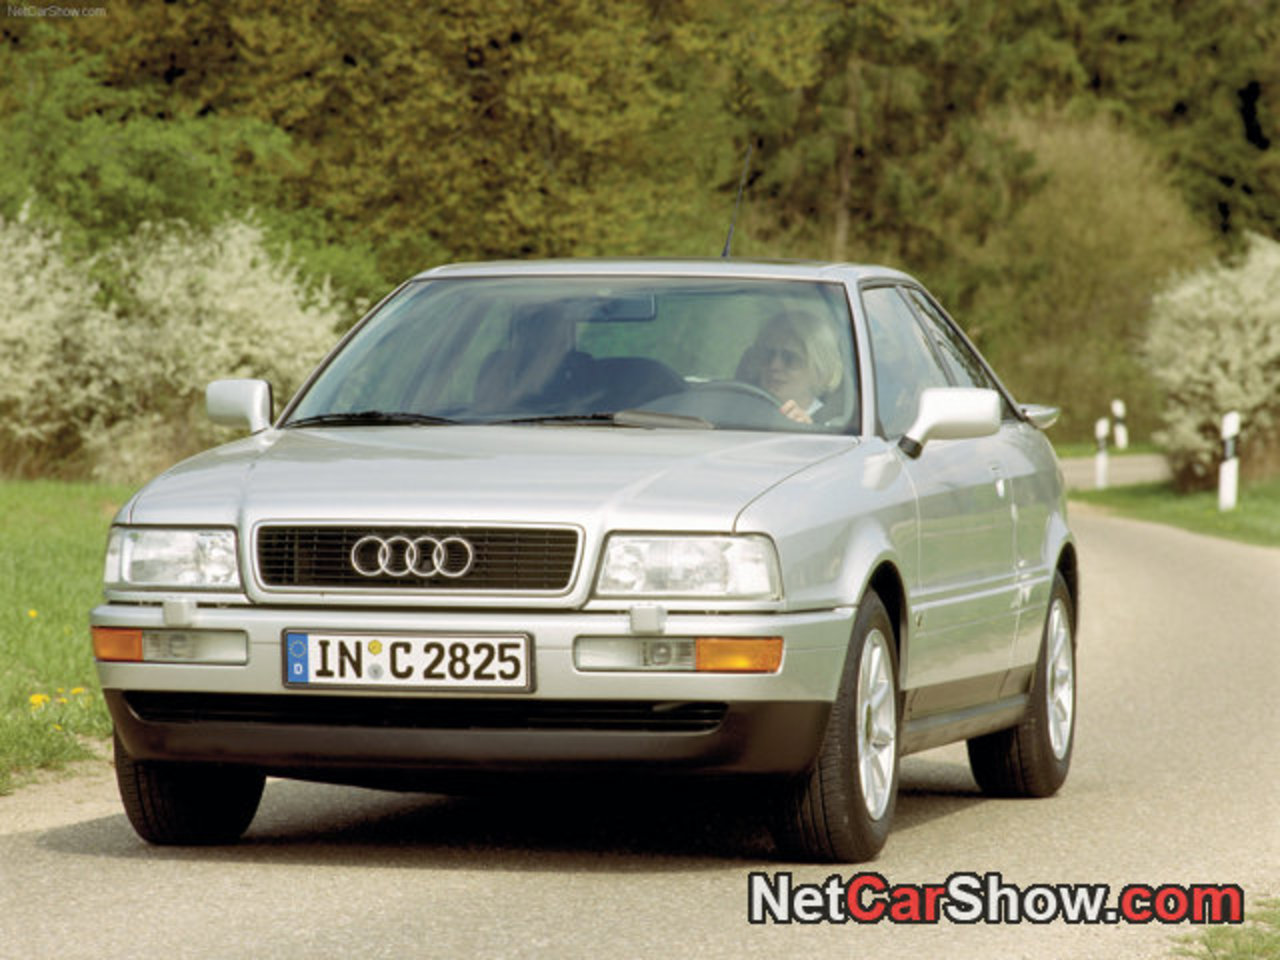 Audi Coupe picture # 02 of 05, Front Angle, MY 1988, 1280x960